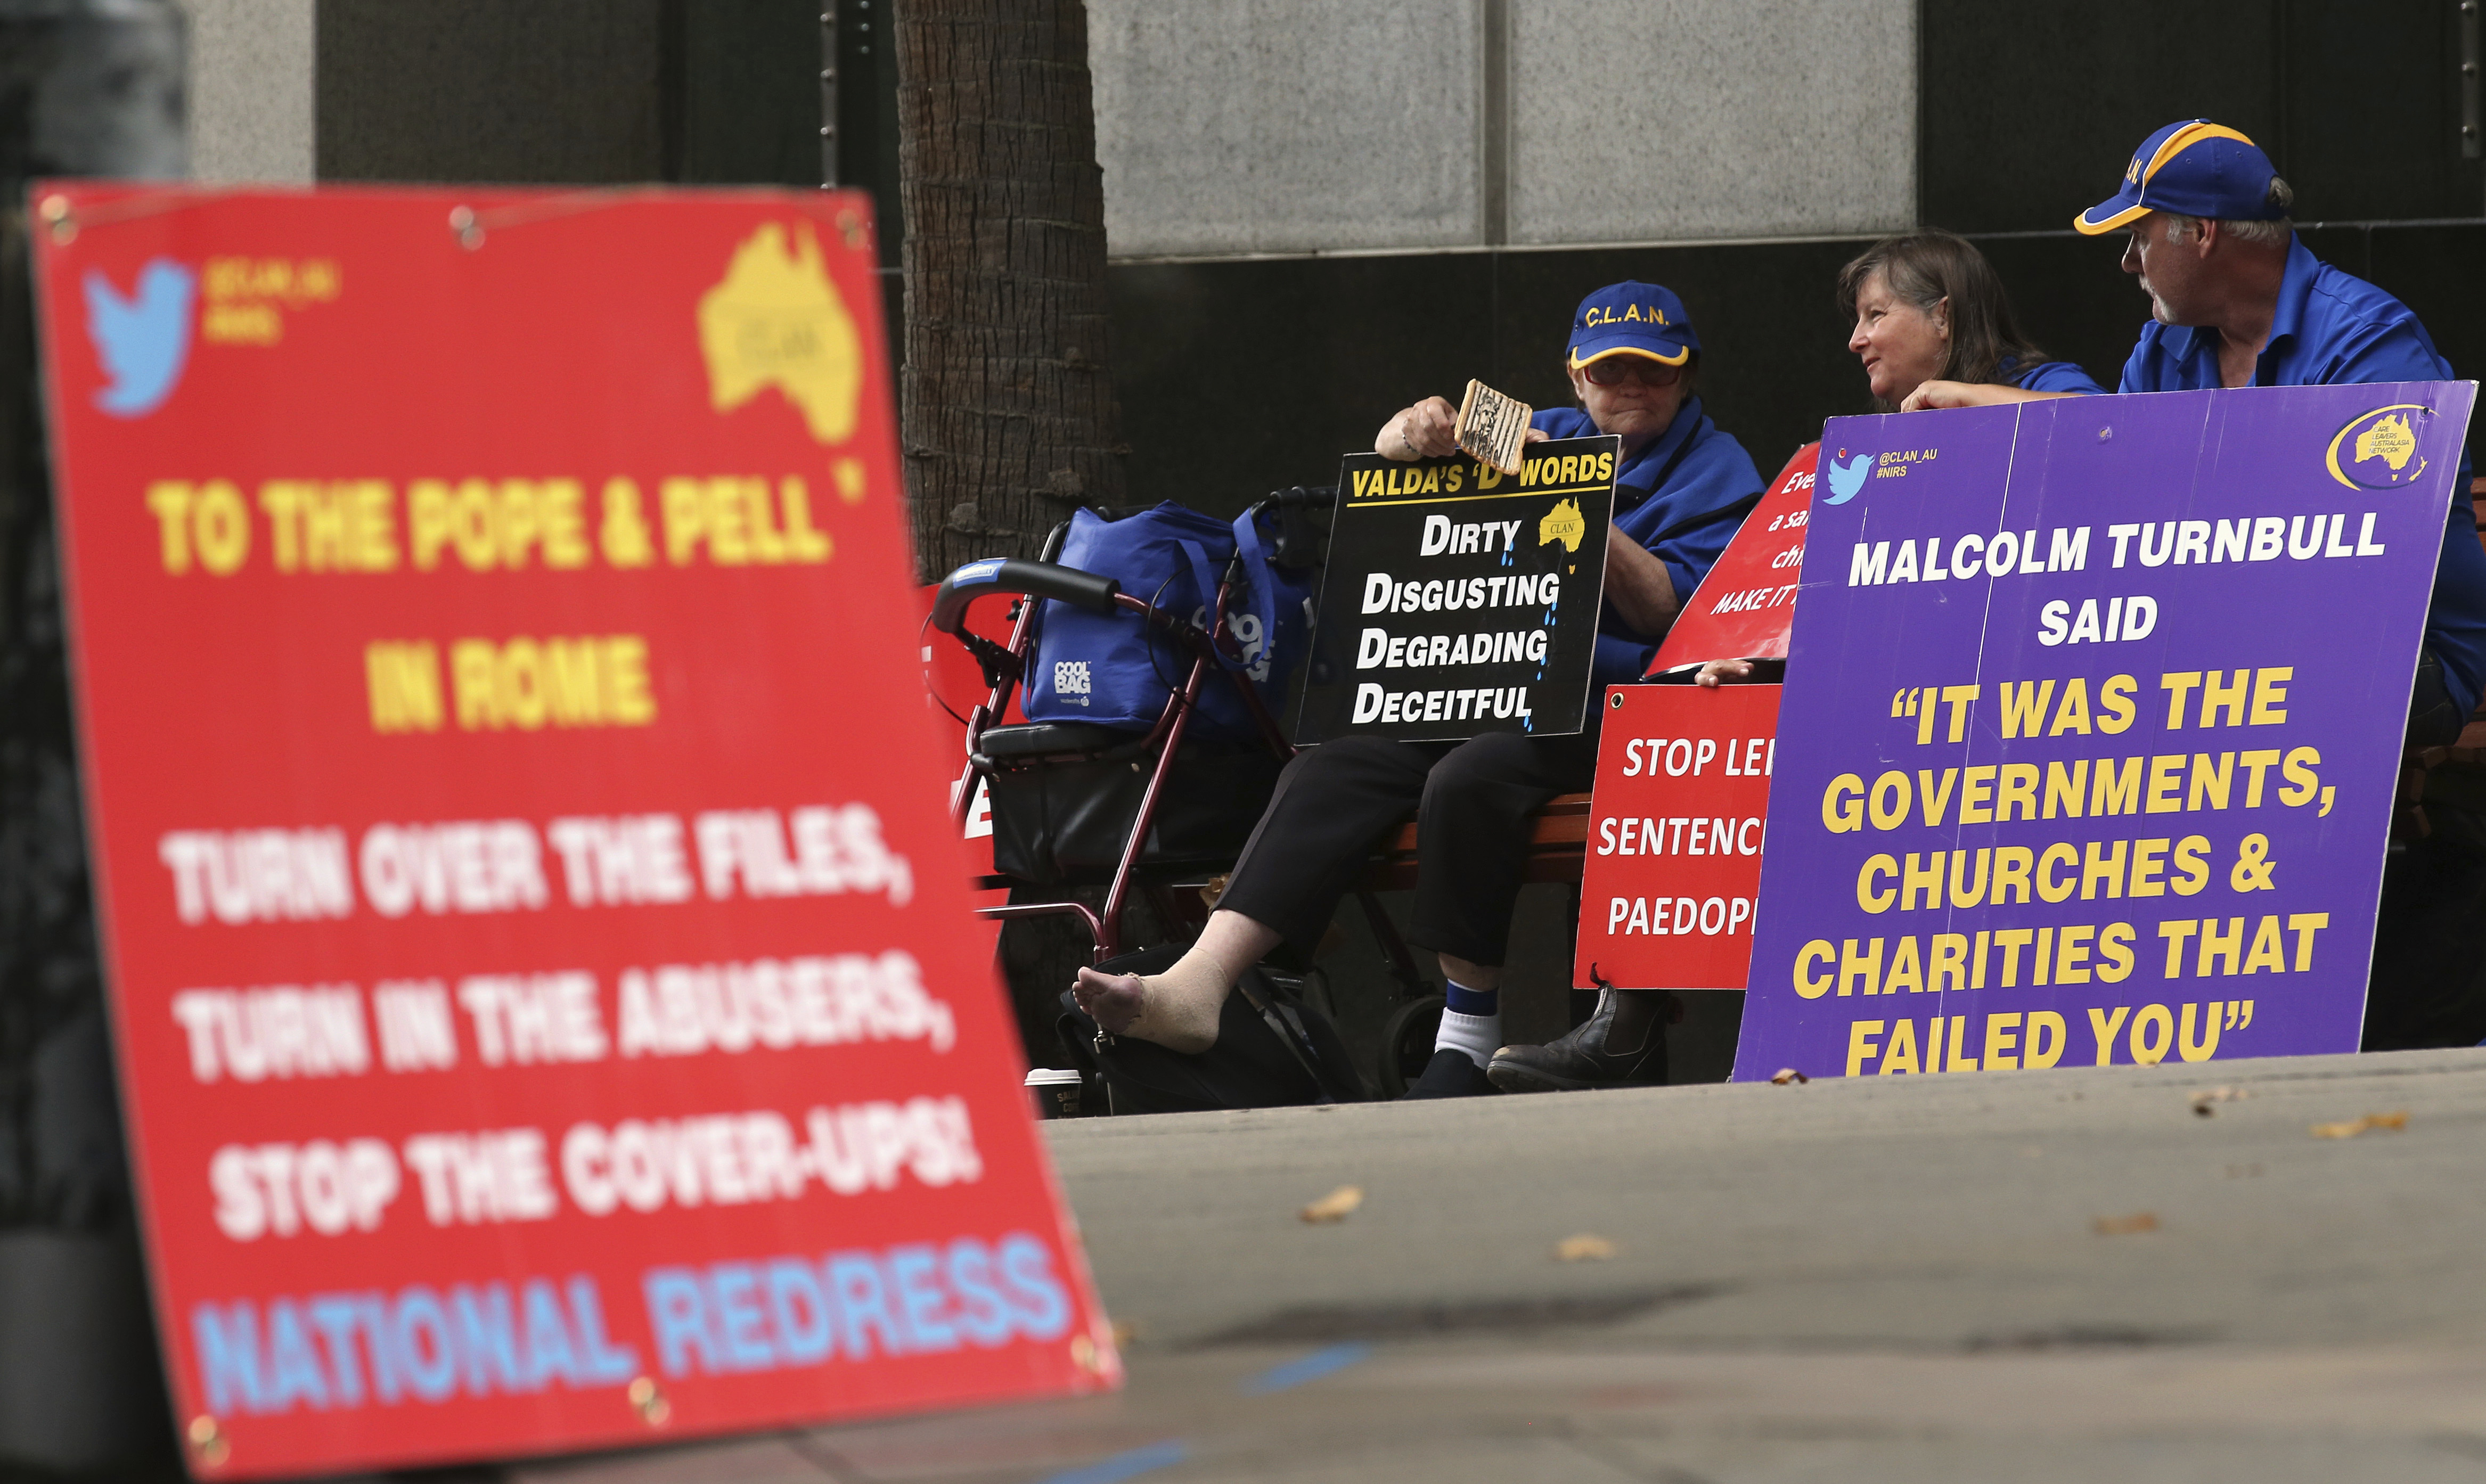 FILE - In this March 1, 2016 file photo, a group gathers to protest with placards outside an inquiry into child sex abuse in Sydney. Pope Francis' high-stakes sex abuse prevention summit is meant to call attention to the crisis as a global problem that requires a global response. Australia's Catholic Church has a horrific abuse record, which in part prompted the government to launch a four-year national investigation into all forms of institutional abuse — Catholic and otherwise.  (AP Photo/Rick Rycroft, file)